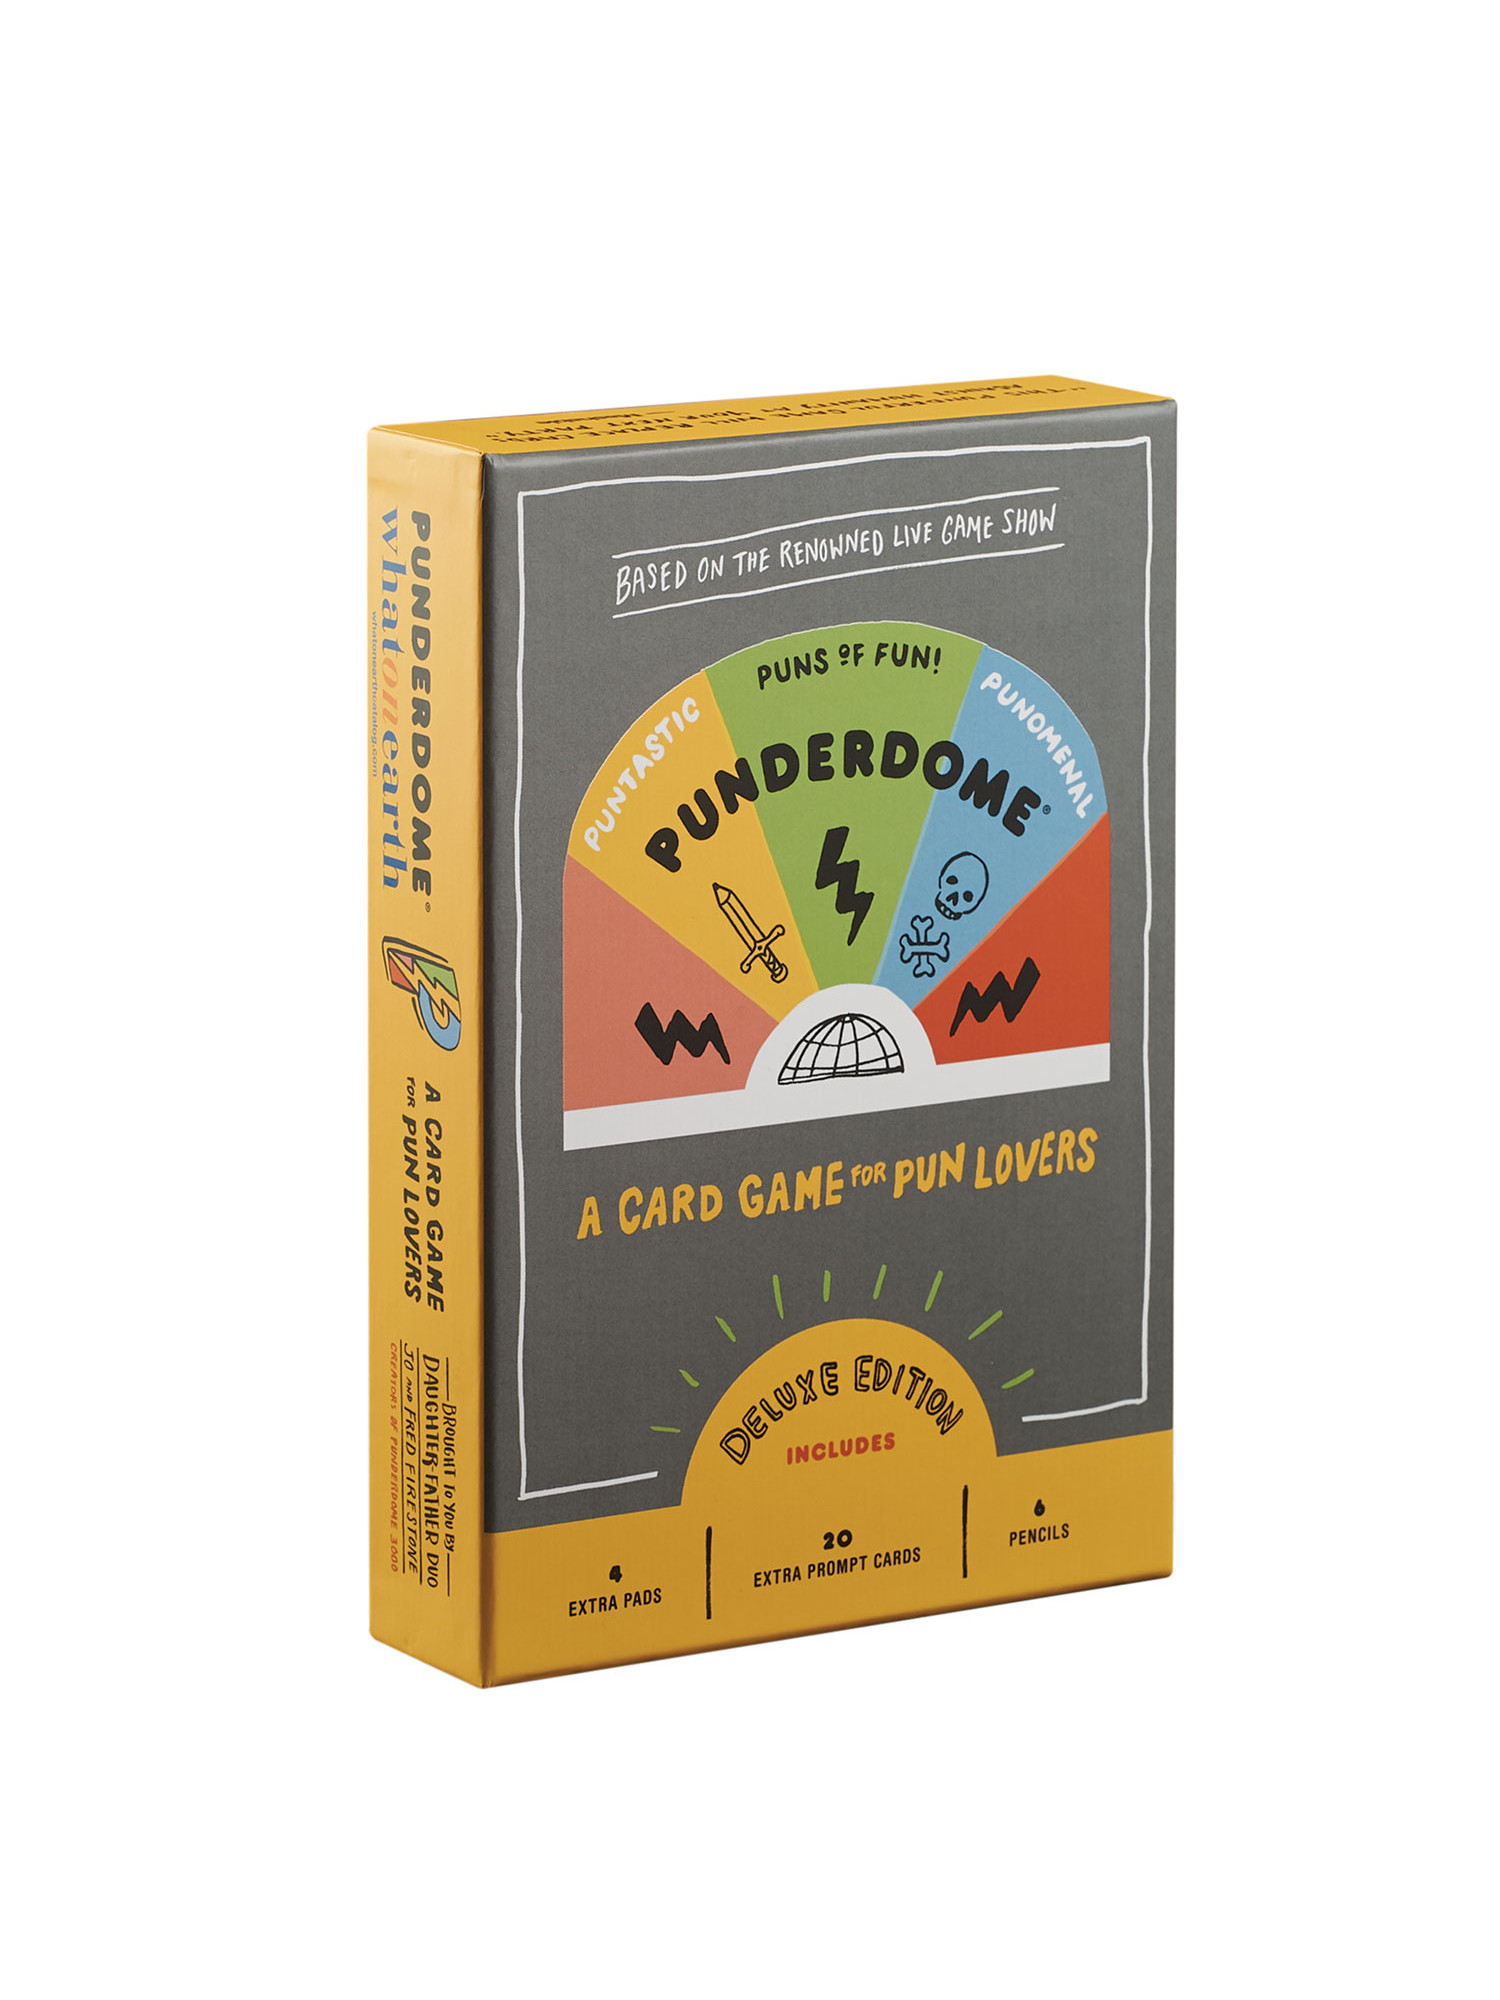 Punderdome: A Card Game for Pun Lovers Deluxe Edition 20 Extra Cards & More by